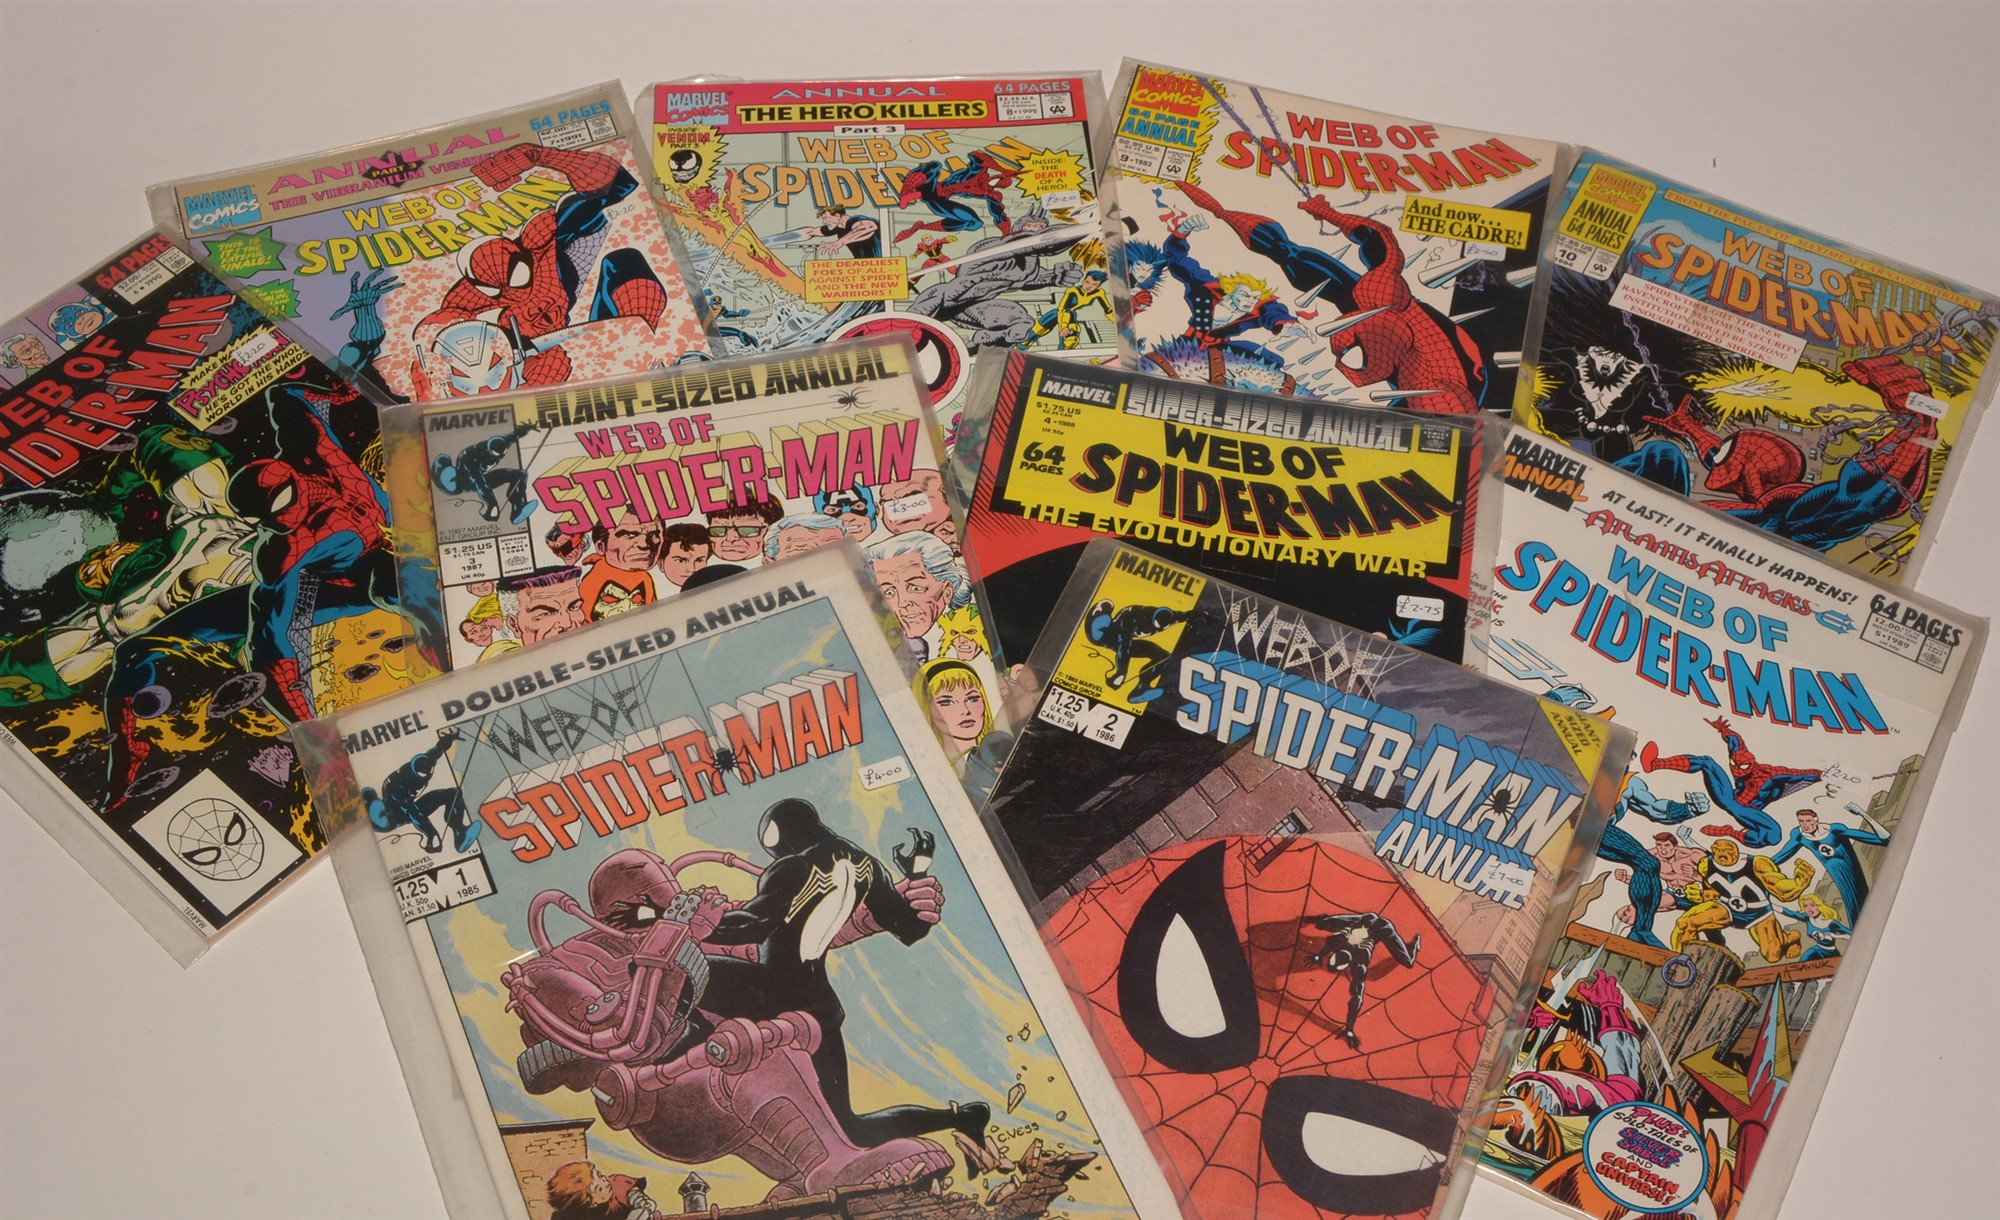 Web of Spider-Man No's. 1, 2, 3, 4, 6 and a large quantity of subsequent issues, highest number 125, - Image 2 of 2